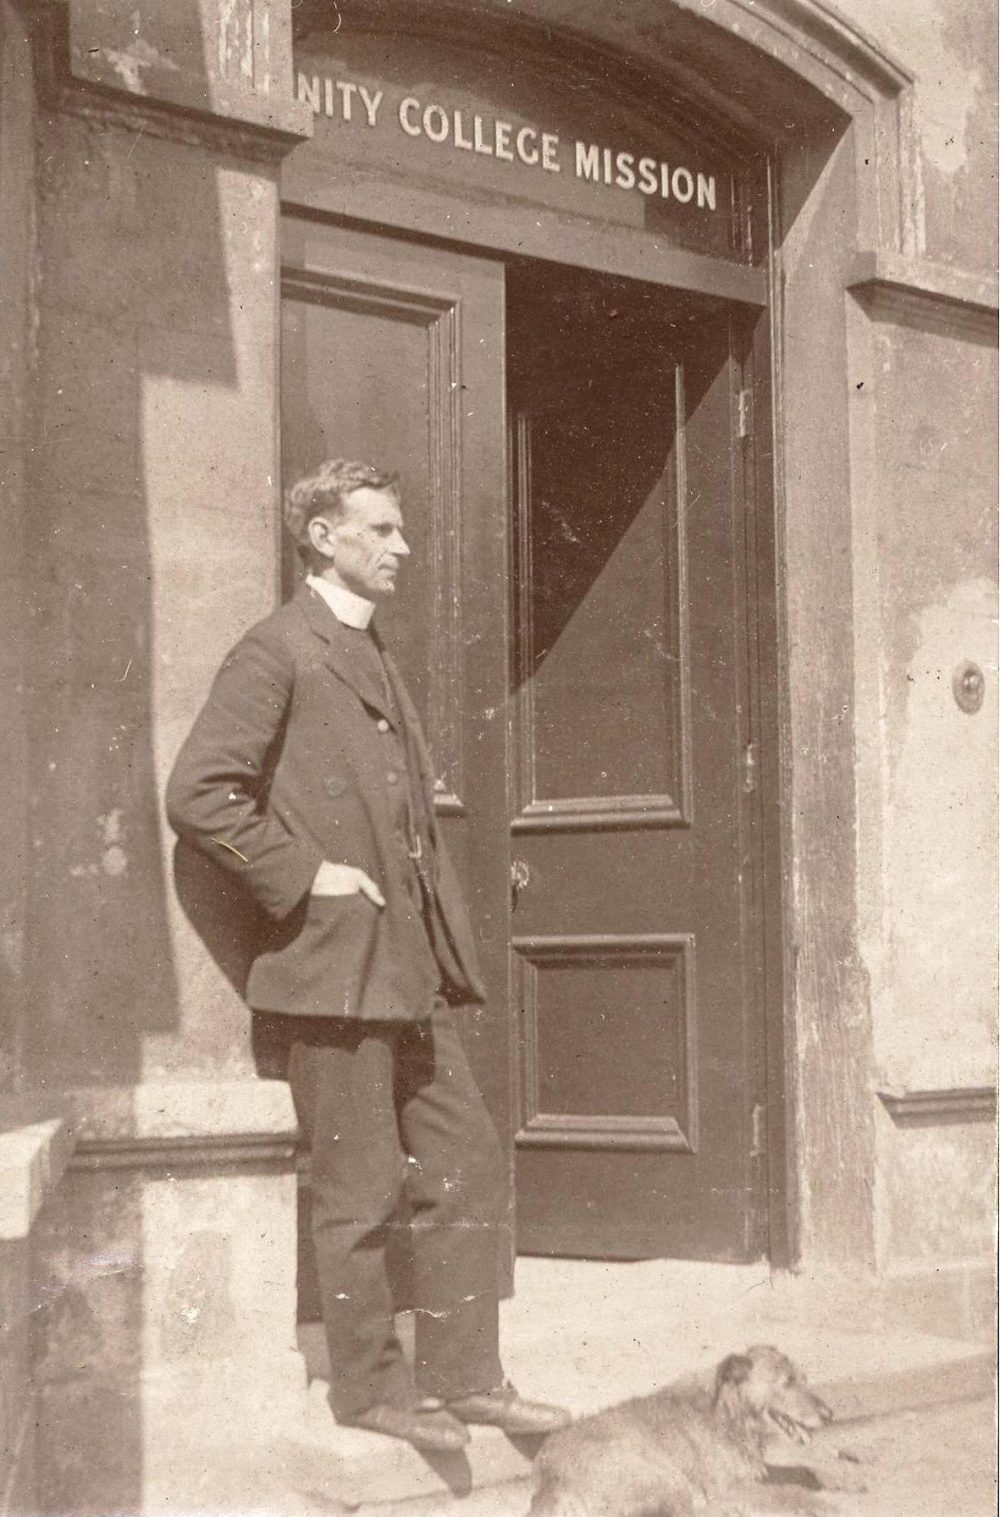 Revd Arthur Barton (1881-1962) Head of Mission 1912-14 at the door of the Trinity College Mission Belfast, RCB Library MS 295